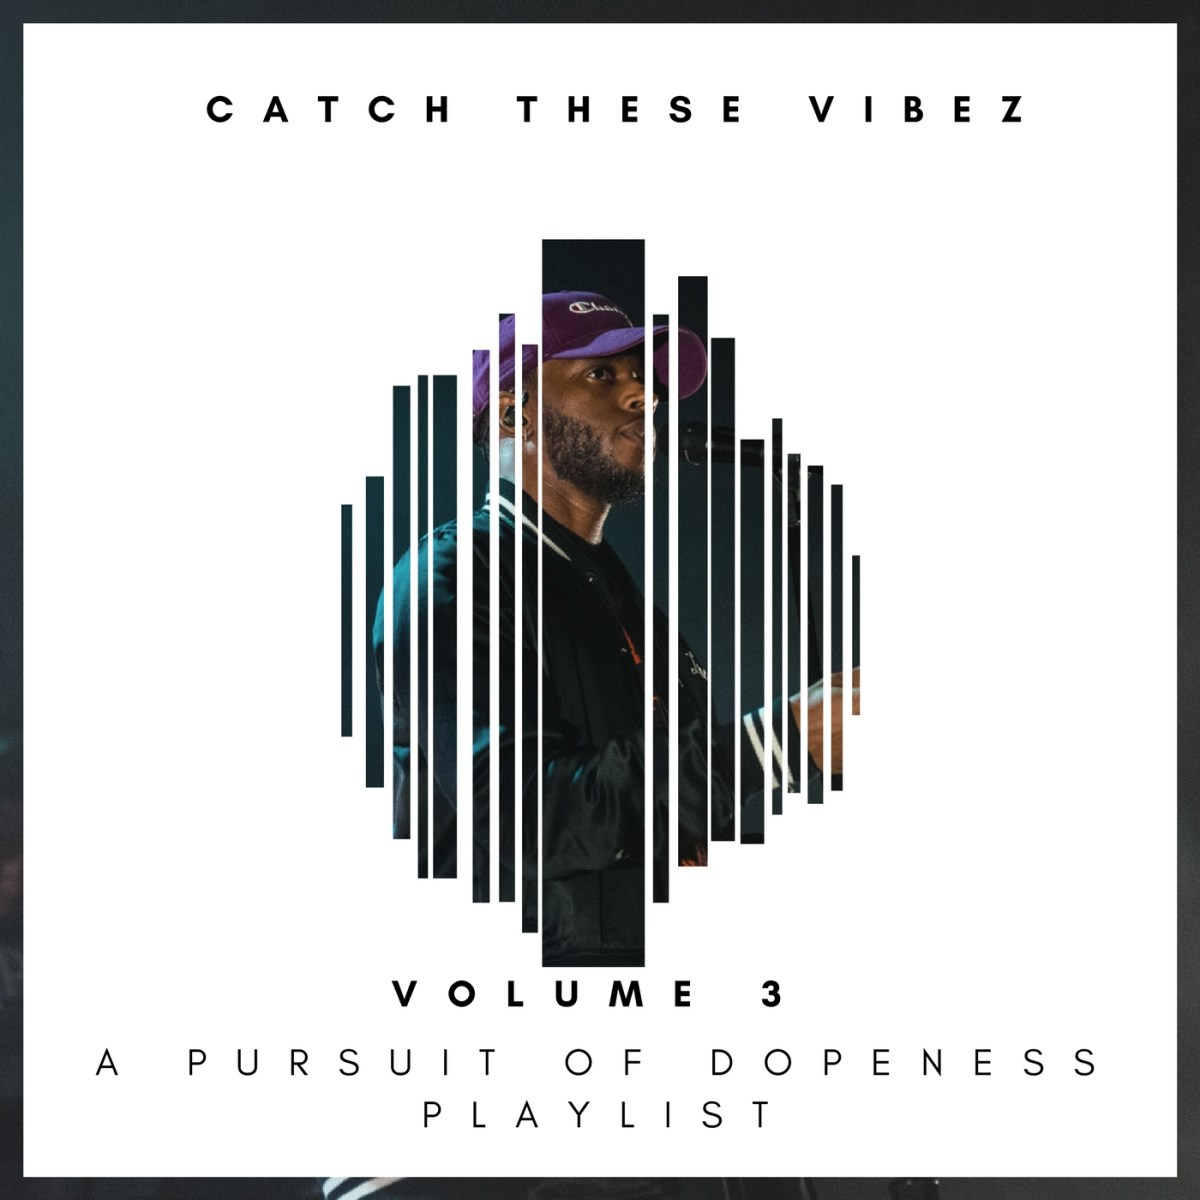 Catch These Vibez Vol. 3: A Pursuit Of Dopeness Playlist